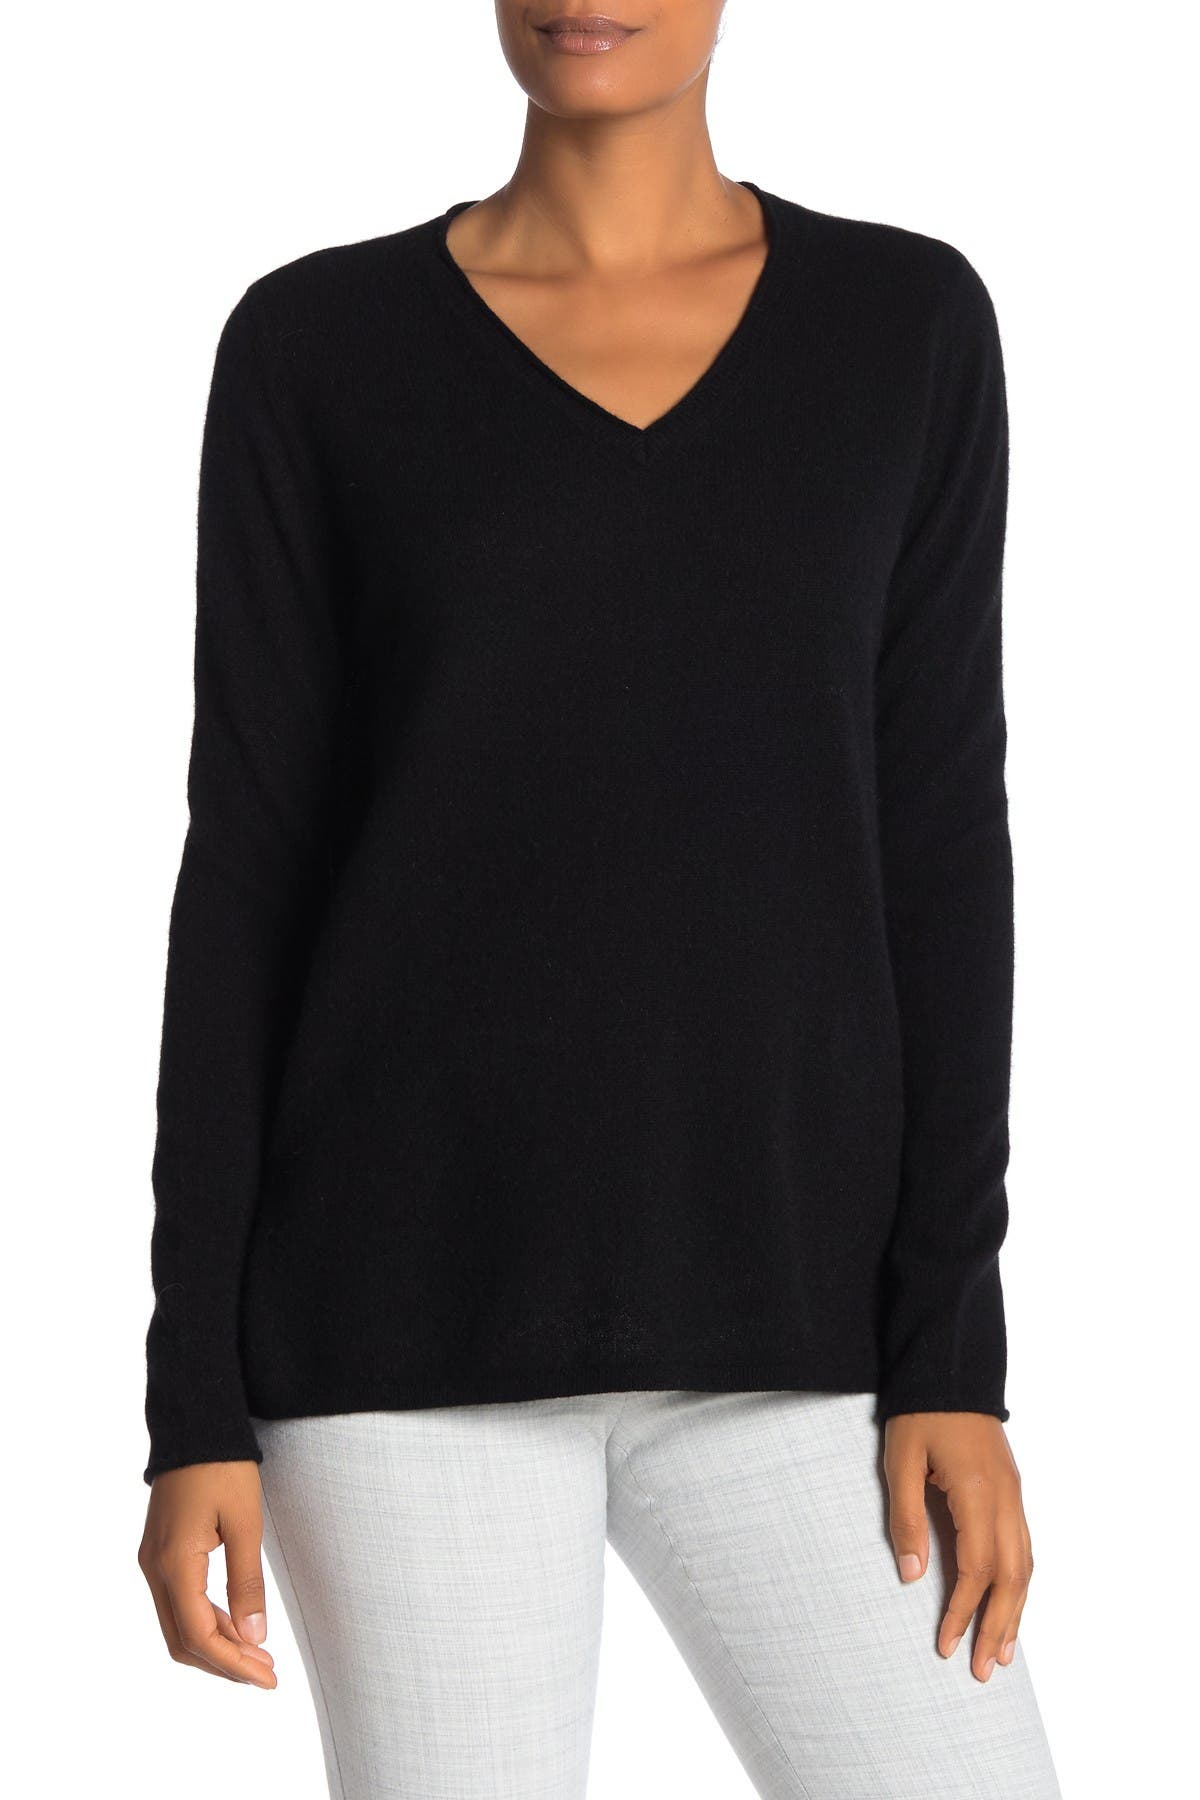 Image of M Magaschoni Cashmere V-Neck Tunic Sweater